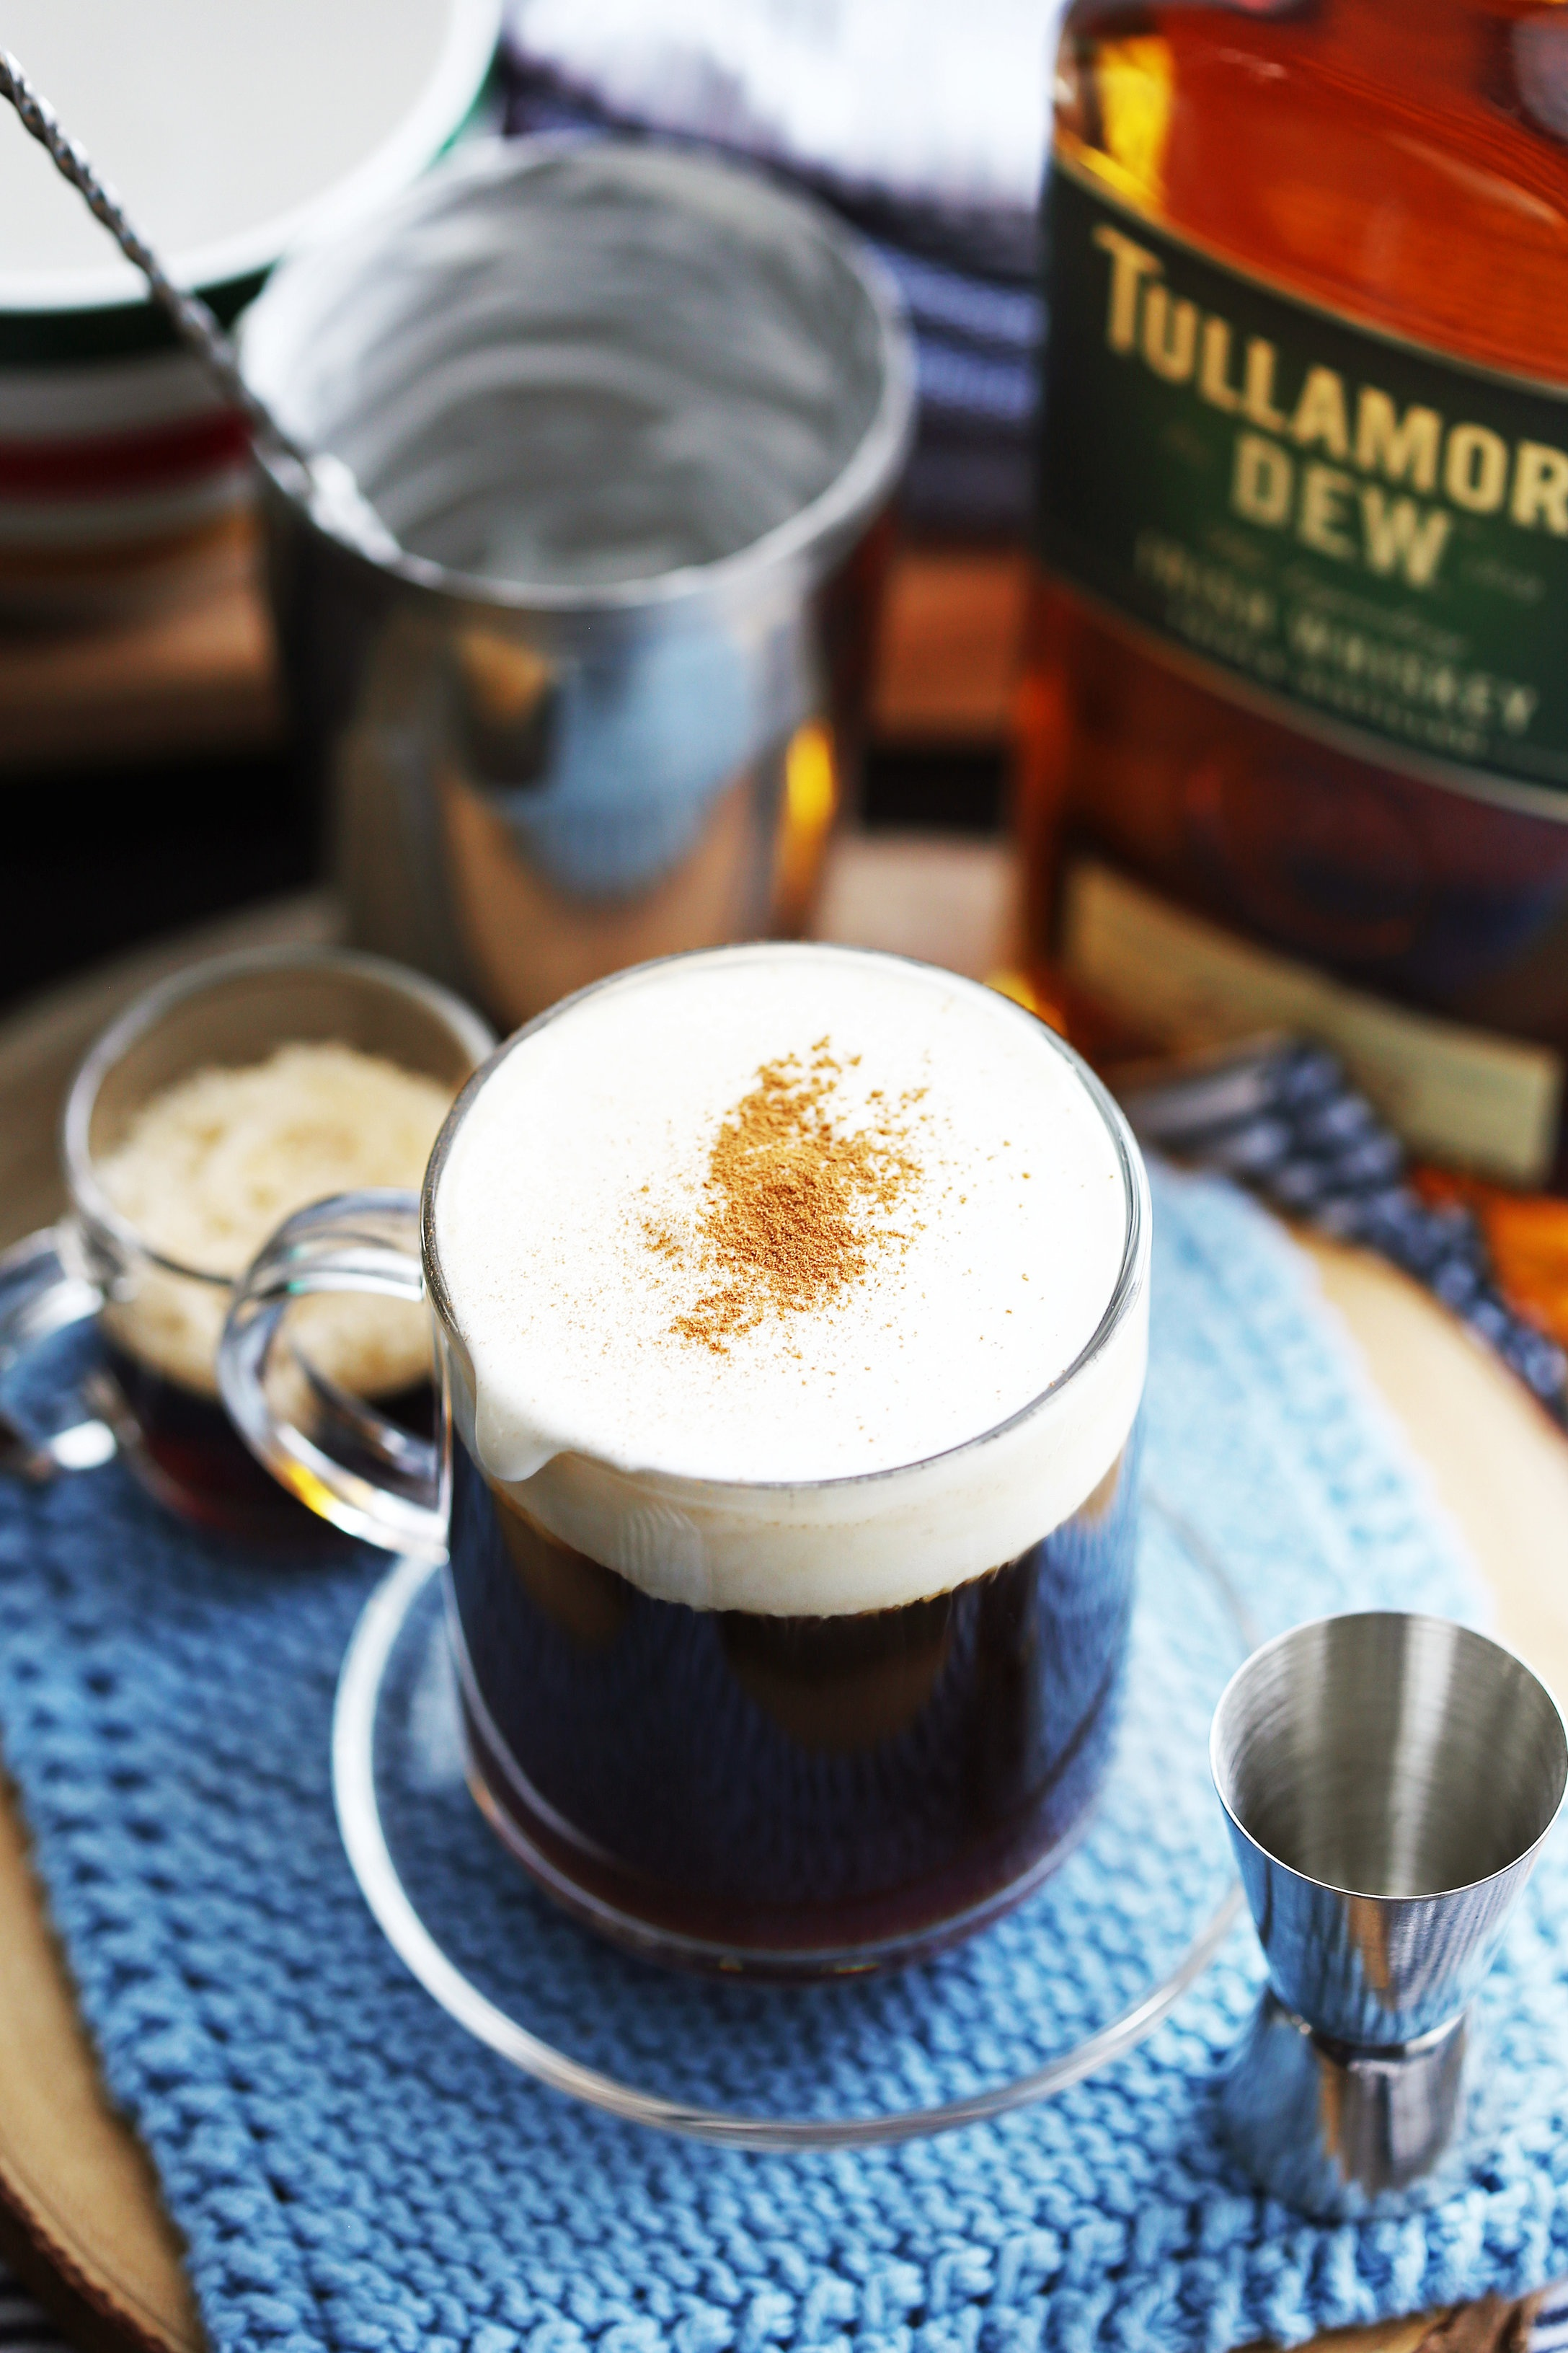 Maple Irish coffee topped with lightly whipped cream and ground cinnamon in a glass mug.